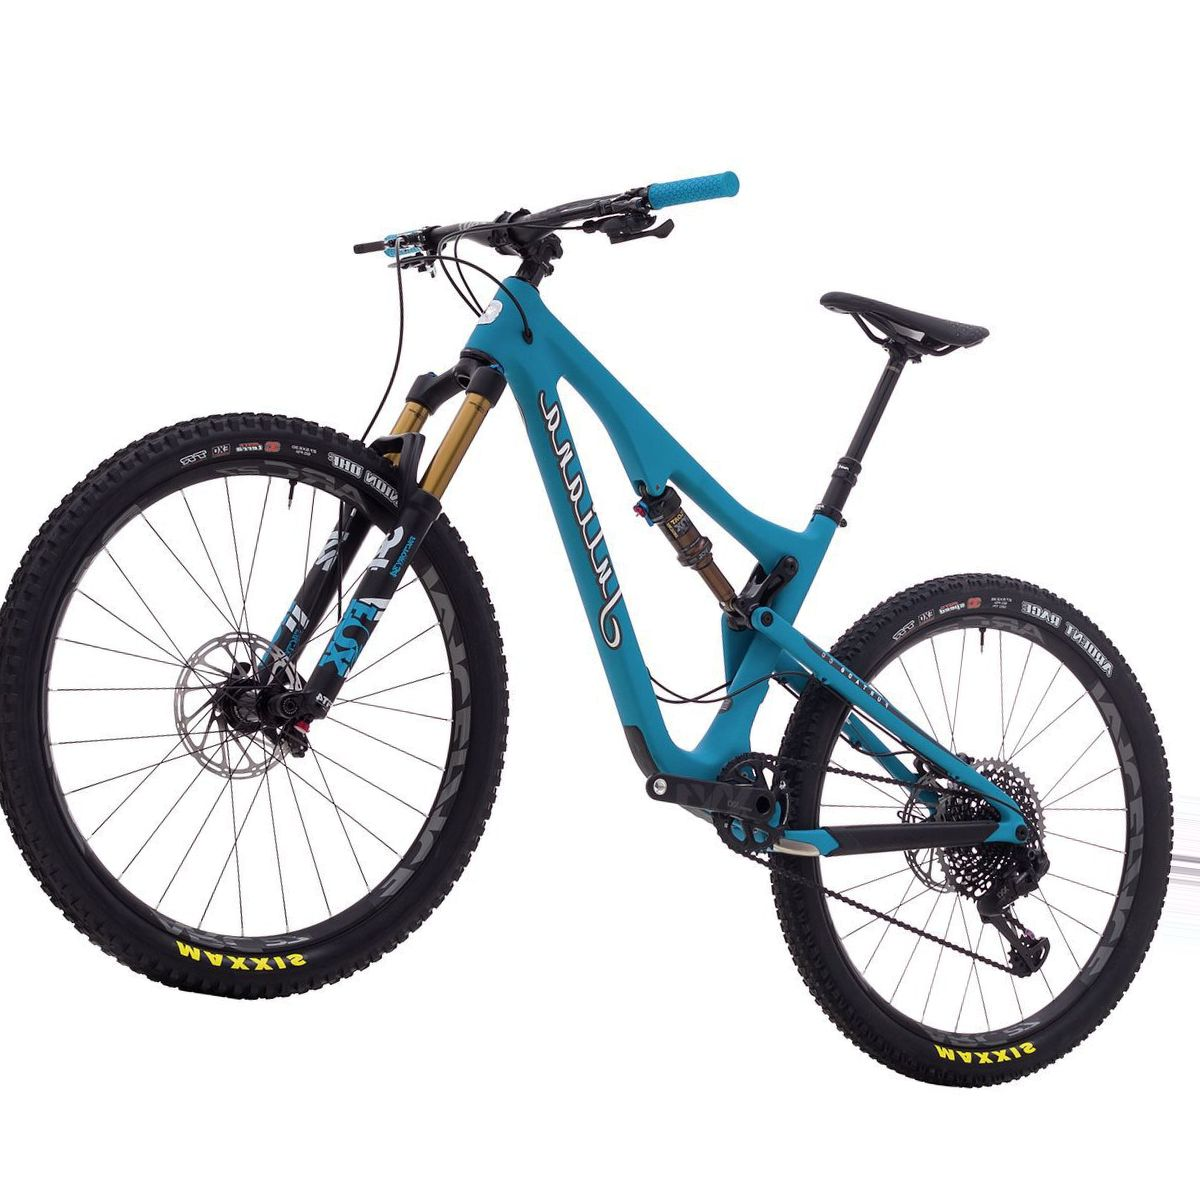 Juliana Furtado 2.1 Carbon CC XX1 Eagle Mountain Bike - 2018 - Women's